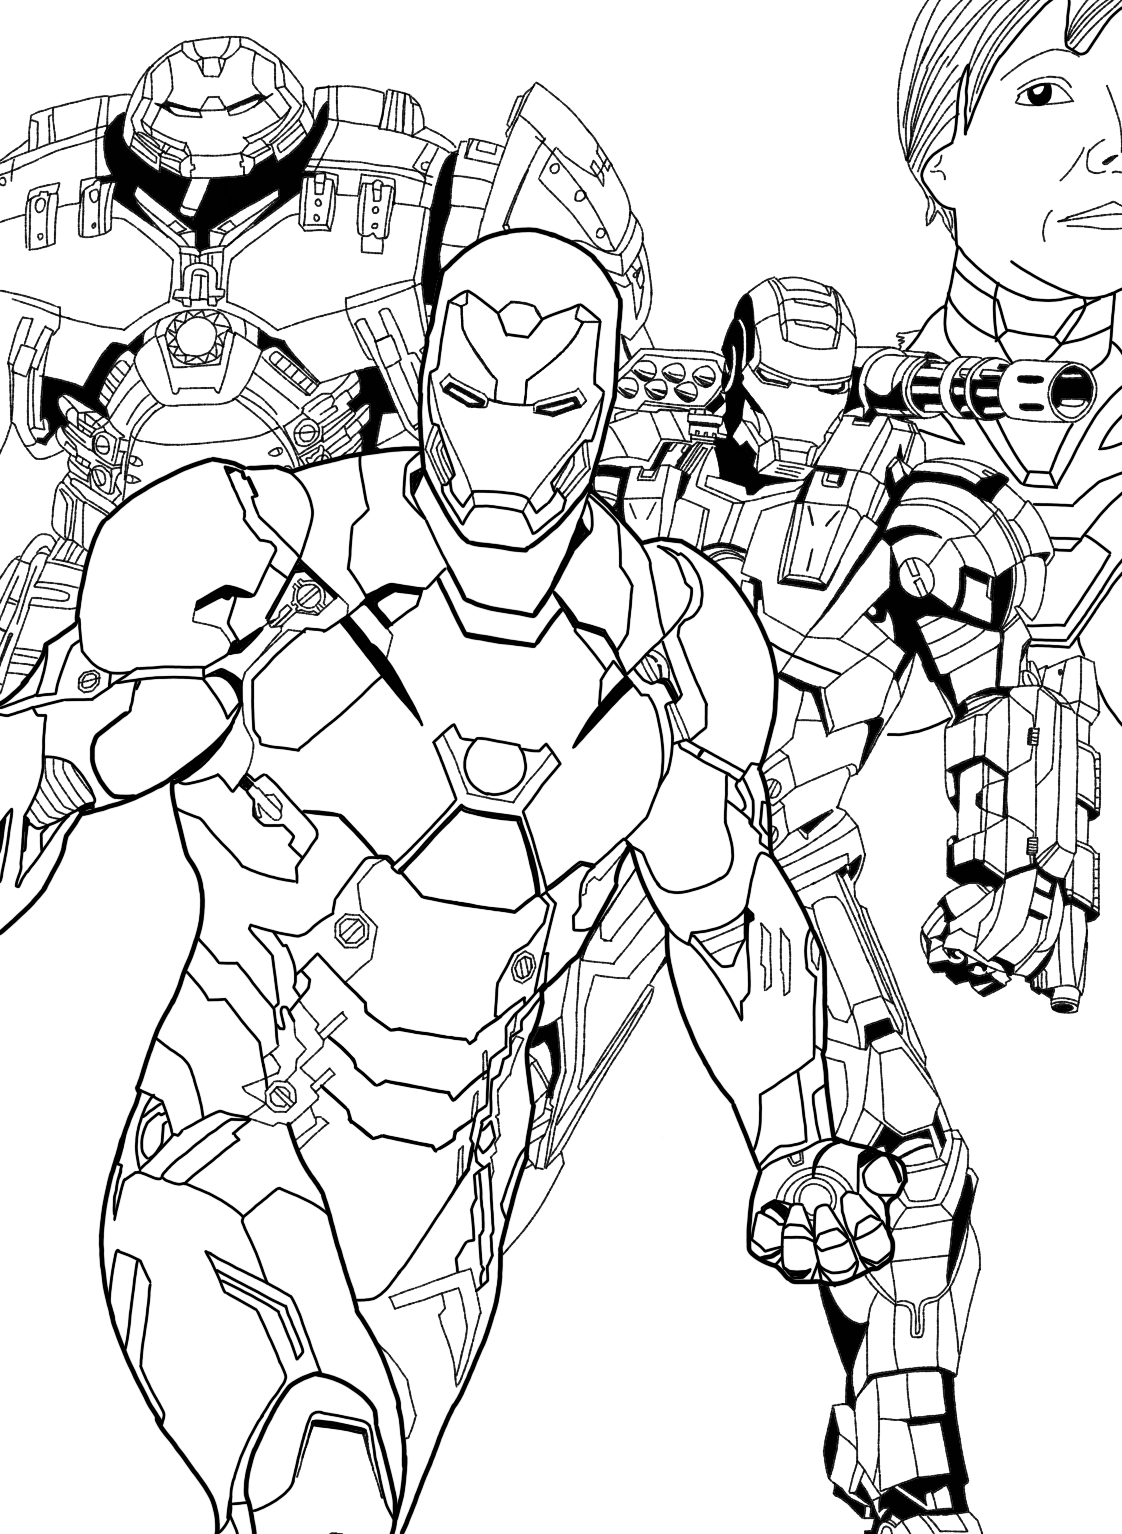 Iron Man Suits   Superhero Coloring Pages